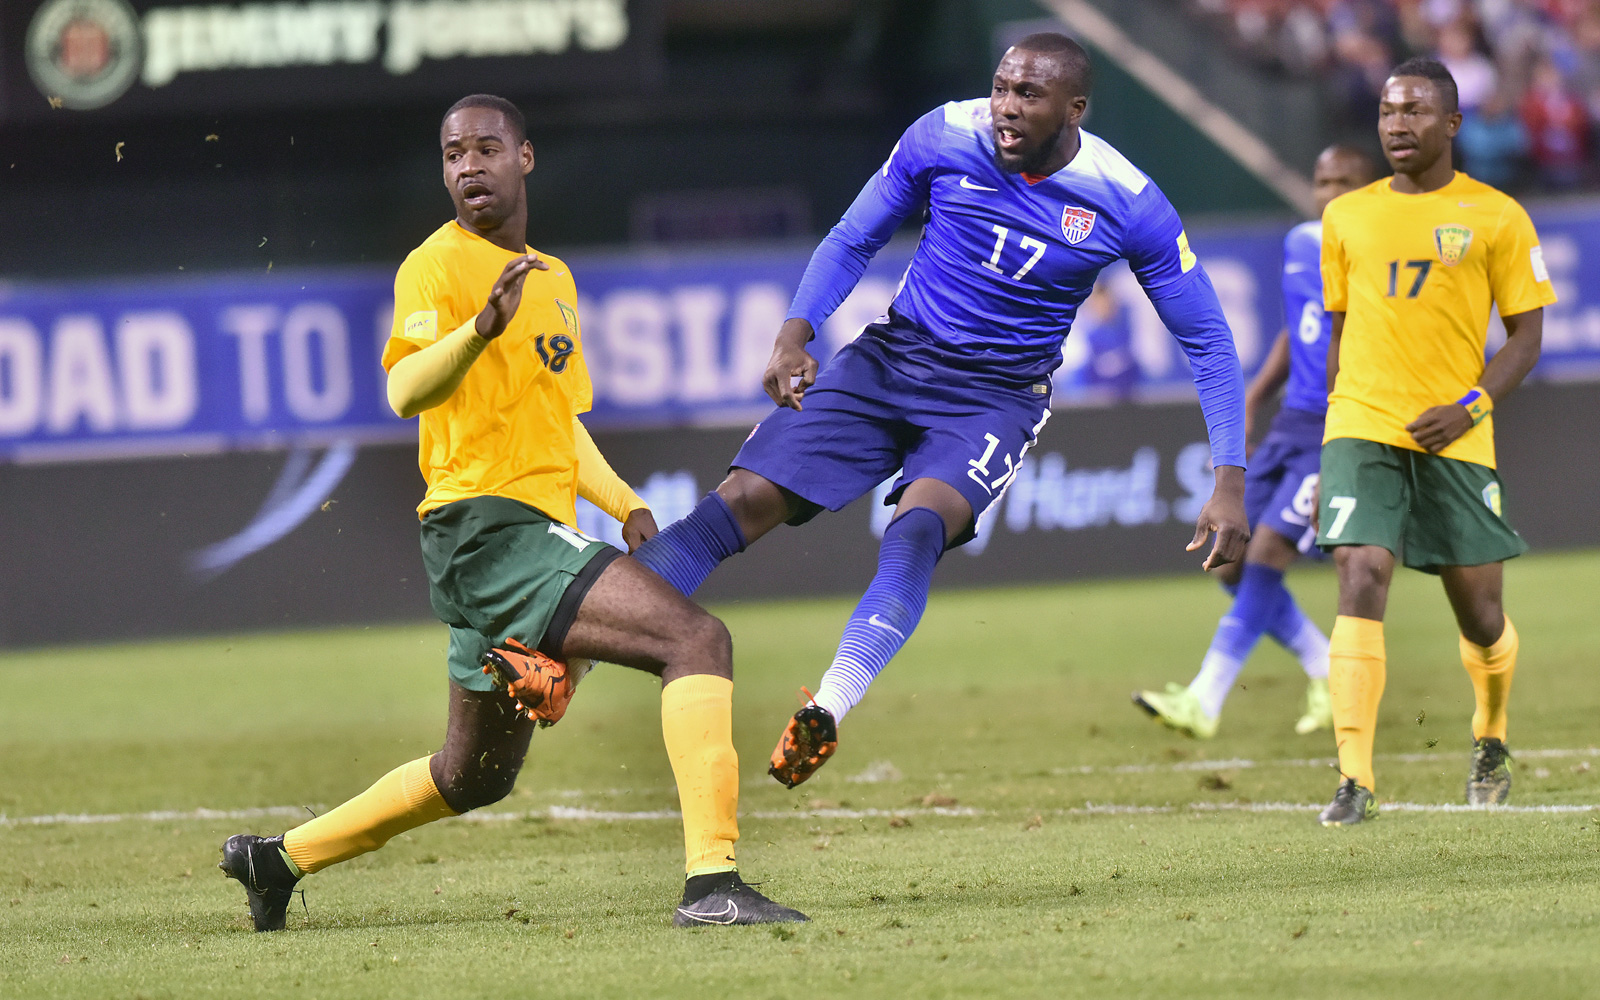 Jozy Altidore watches one of his shots head toward goal in the USA's 6-1 win over St. Vincent and the Grenadines in the opening of 2018 World Cup qualifying. Altidore scored twice, as the USA overcame a shocking early deficit.